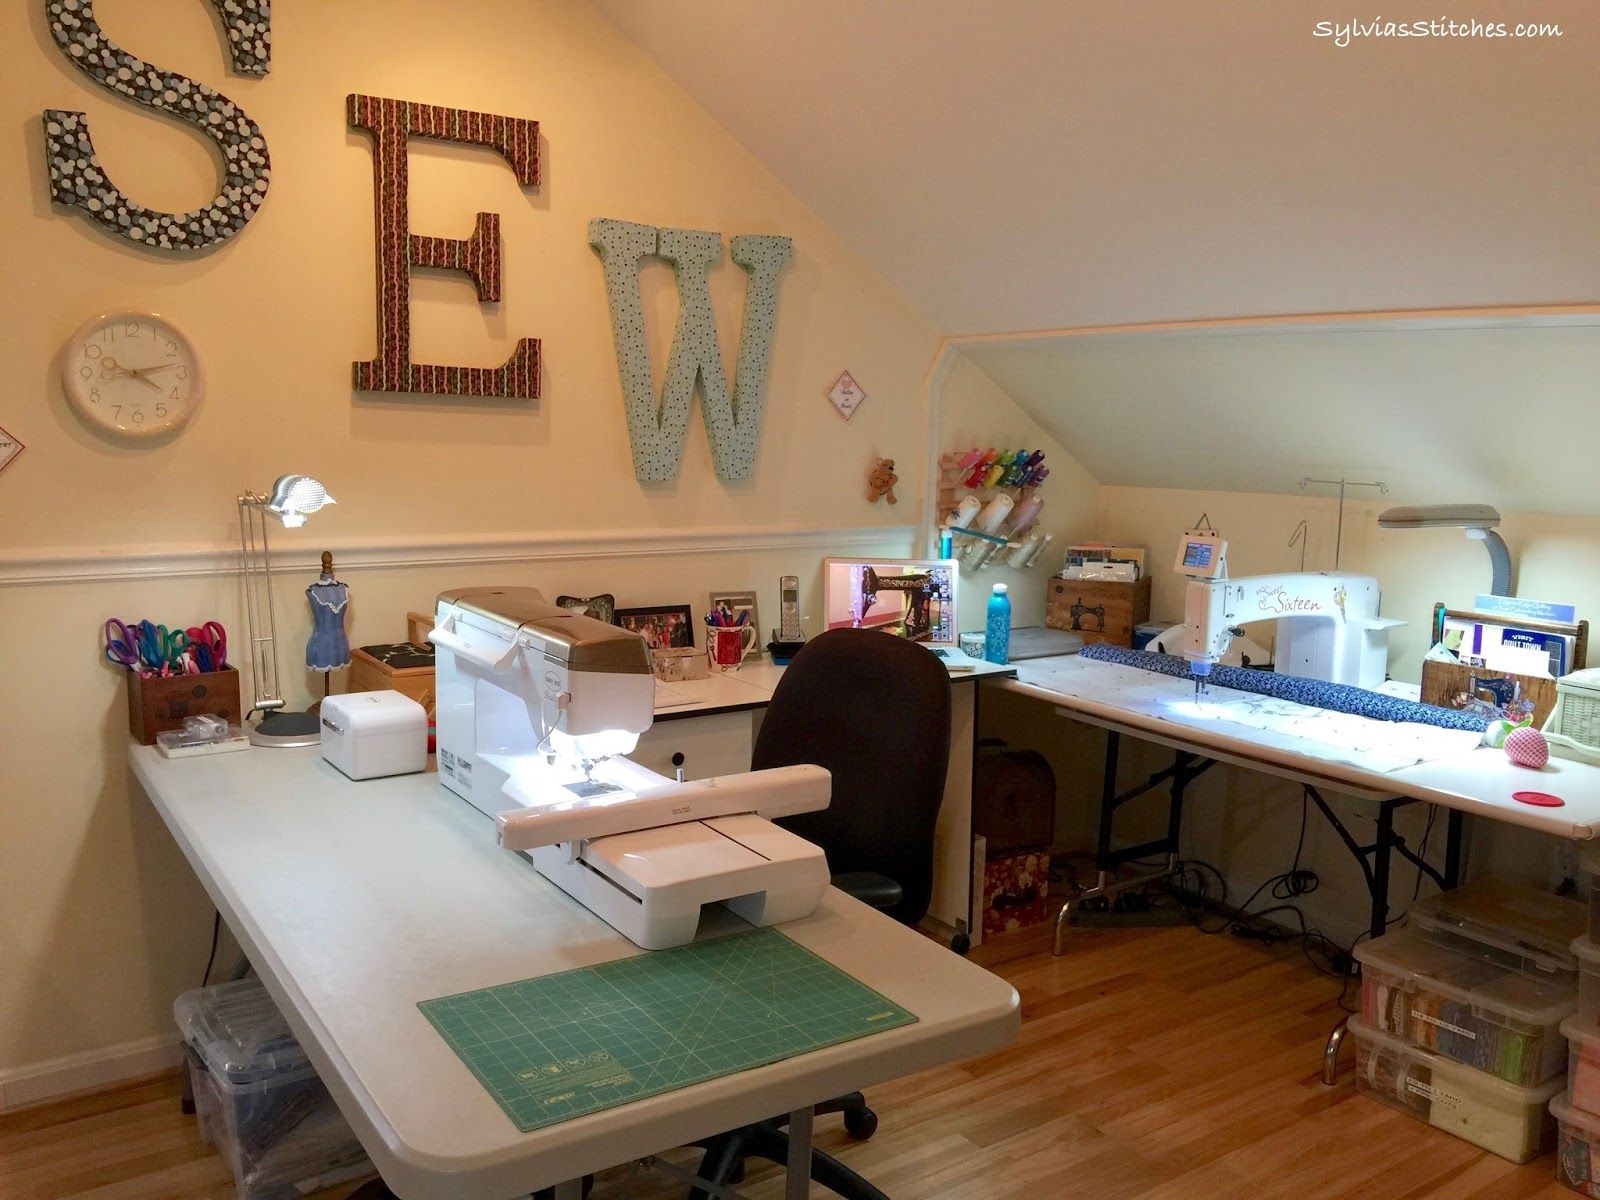 Sewing Room Rearrange Sewing Room Design Small Sewing Rooms Sewing Room Organization